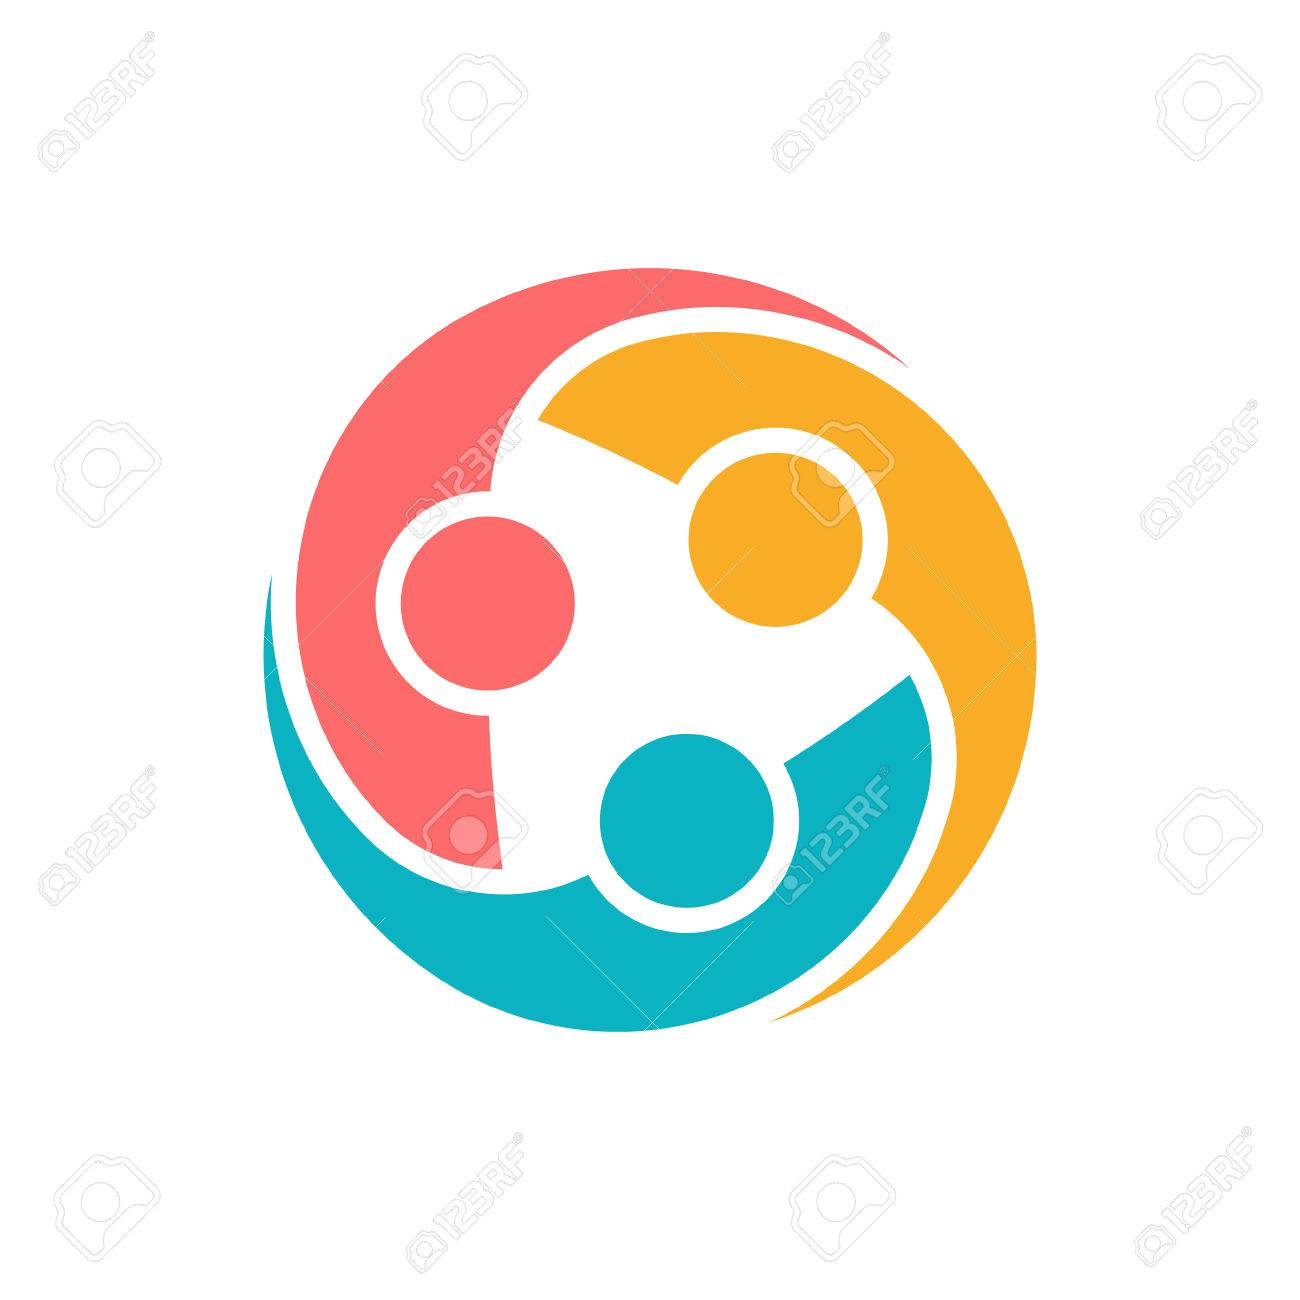 People Protection Group Logo. Vector graphic design illustration - 57043370